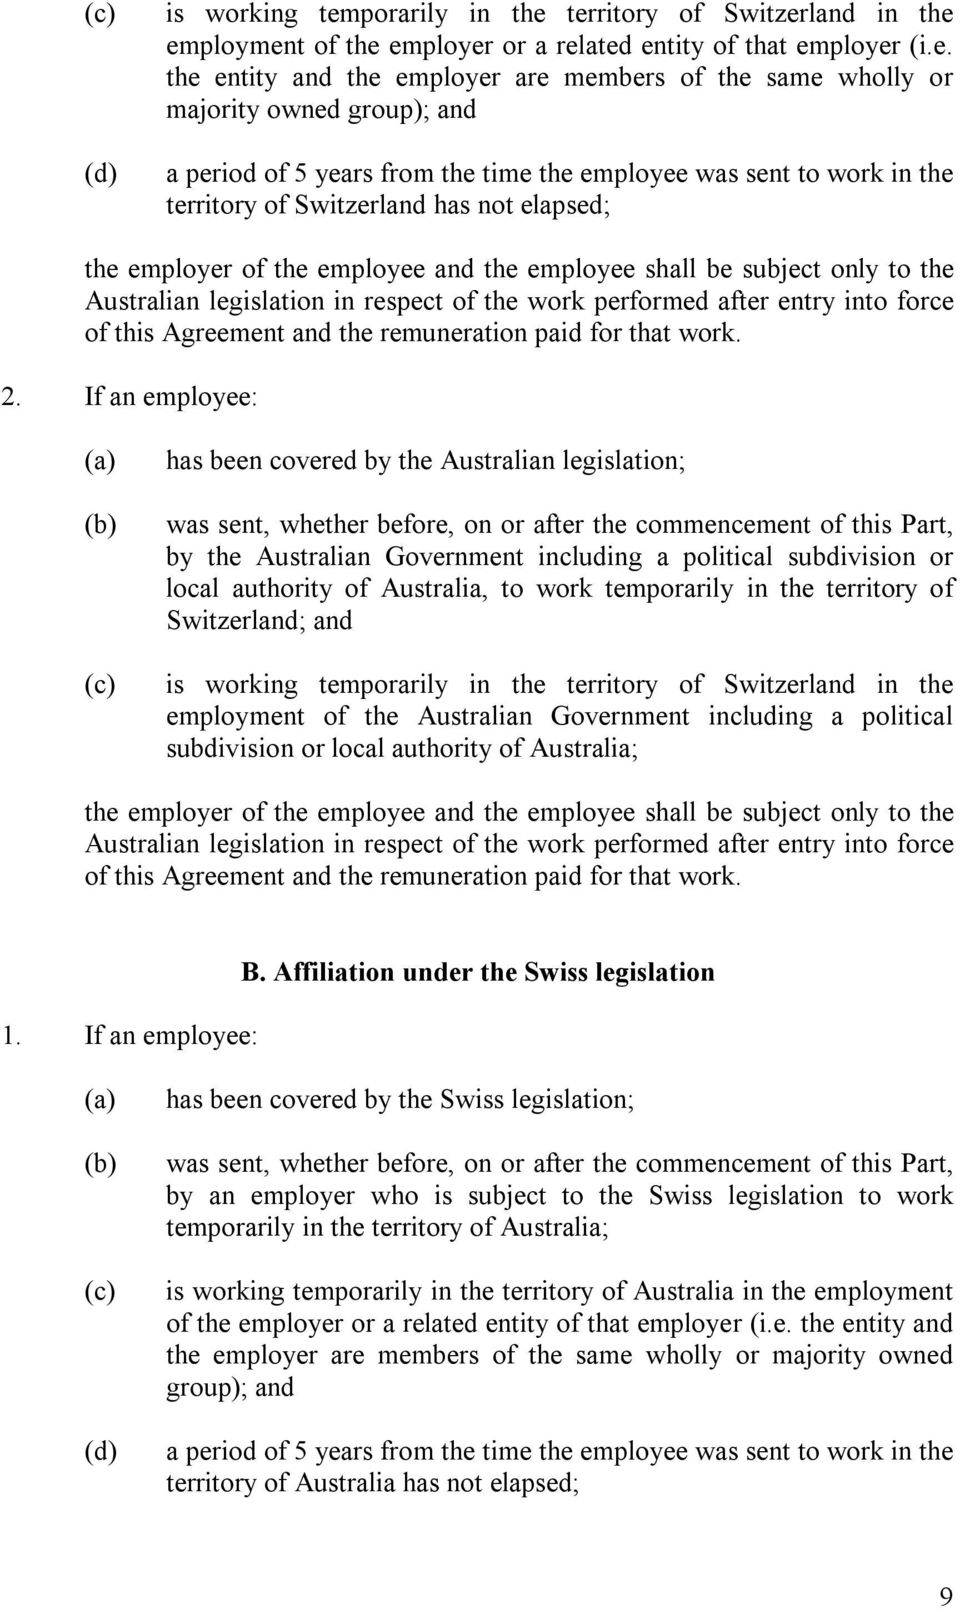 territory of Switzerland in the employment of the employer or a related entity of that employer (i.e. the entity and the employer are members of the same wholly or majority owned group); and a period